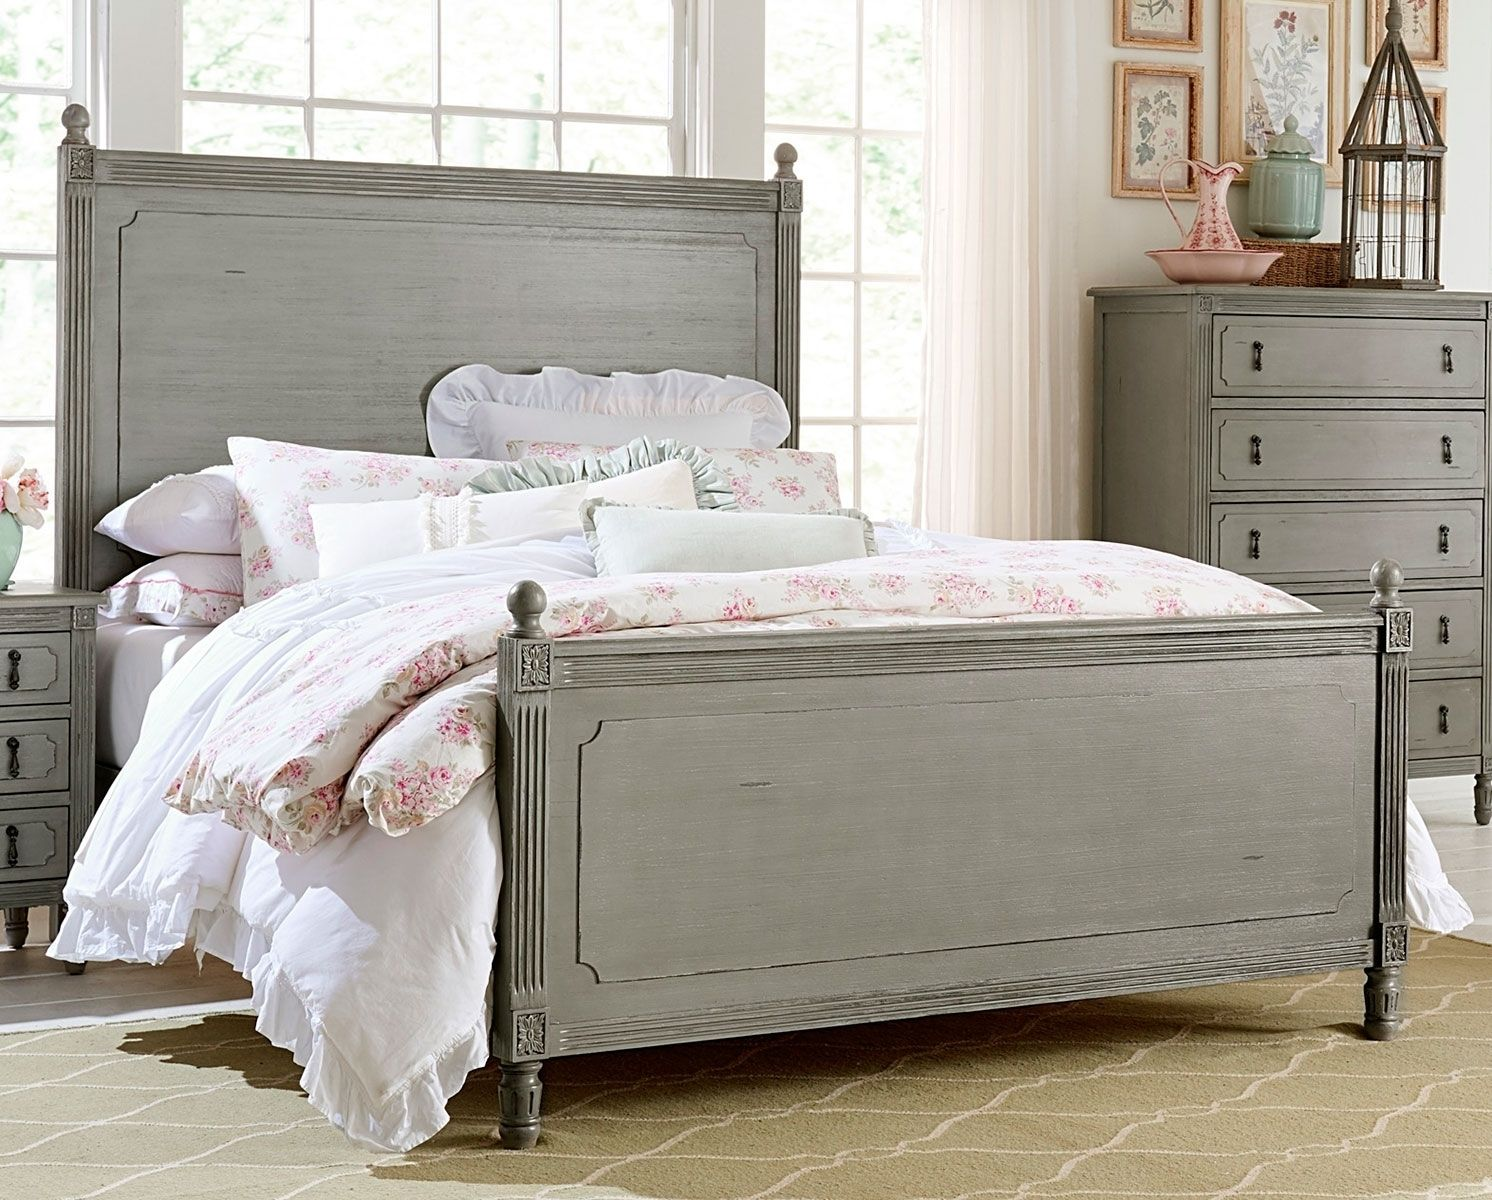 homelegance 1977 1 aviana traditional antiqued gray wood queen bed rh pinterest com